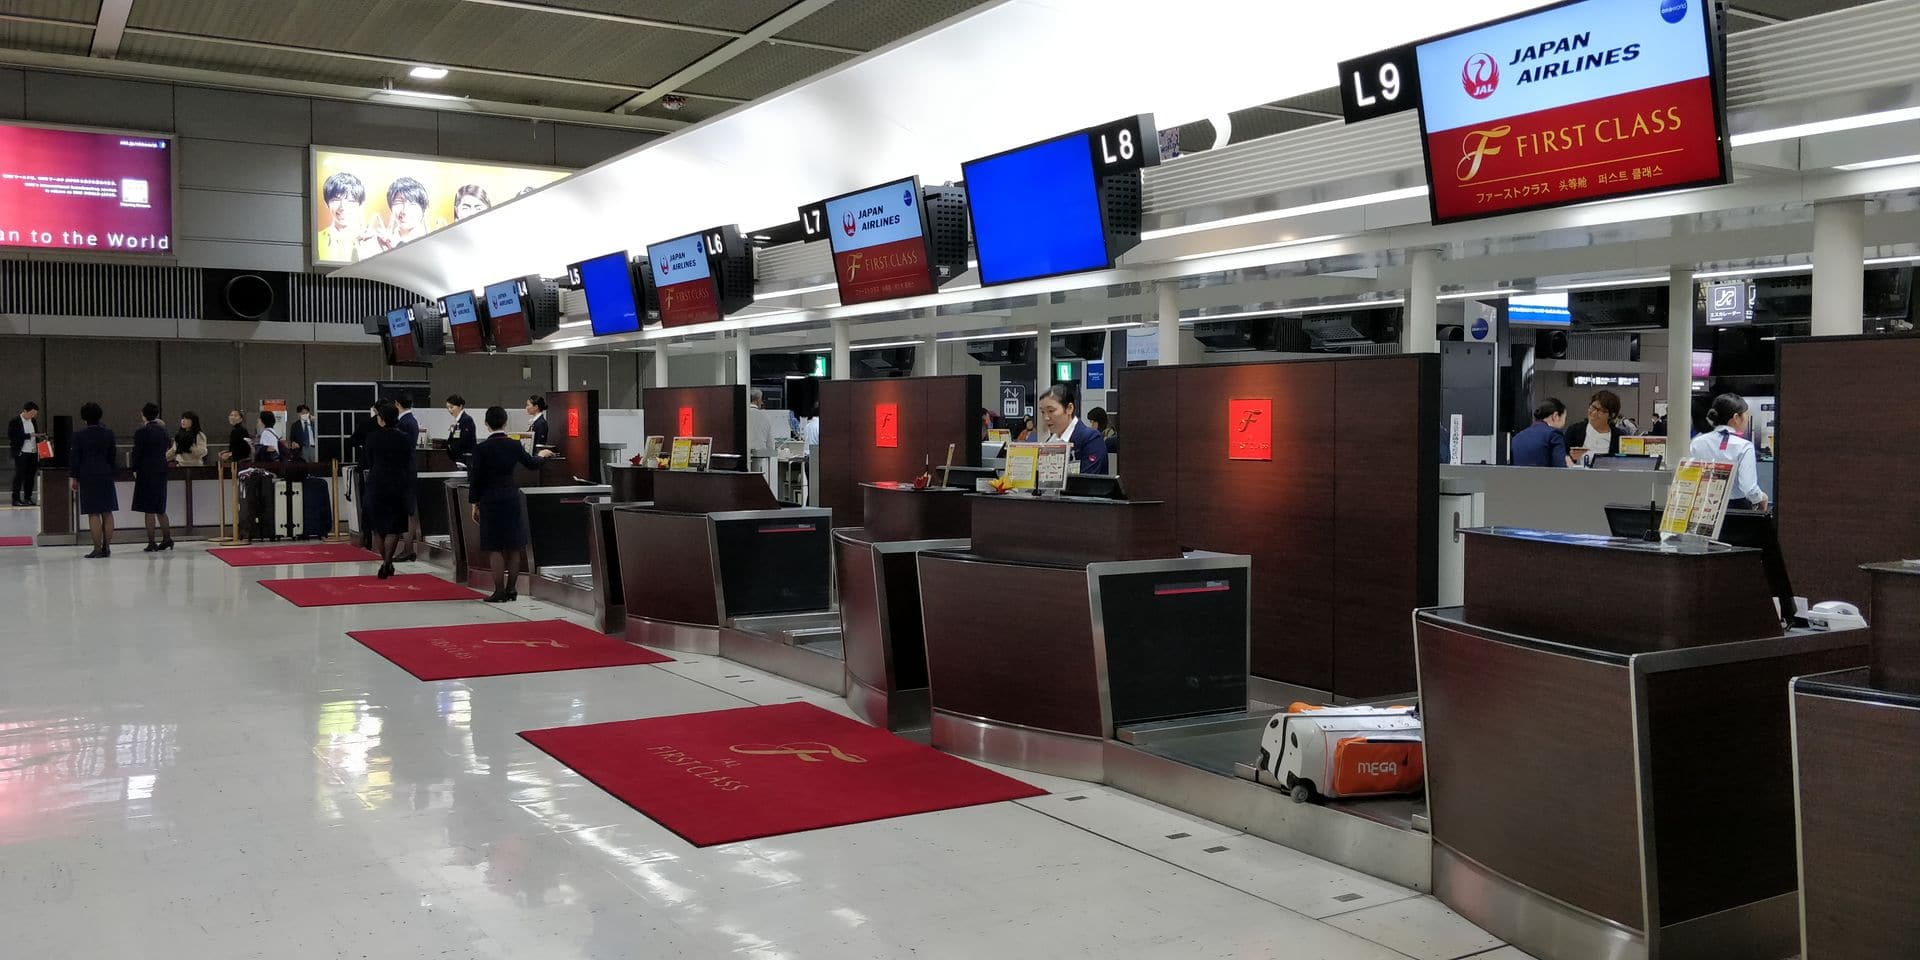 Japan Airlines First Class Check In Narita